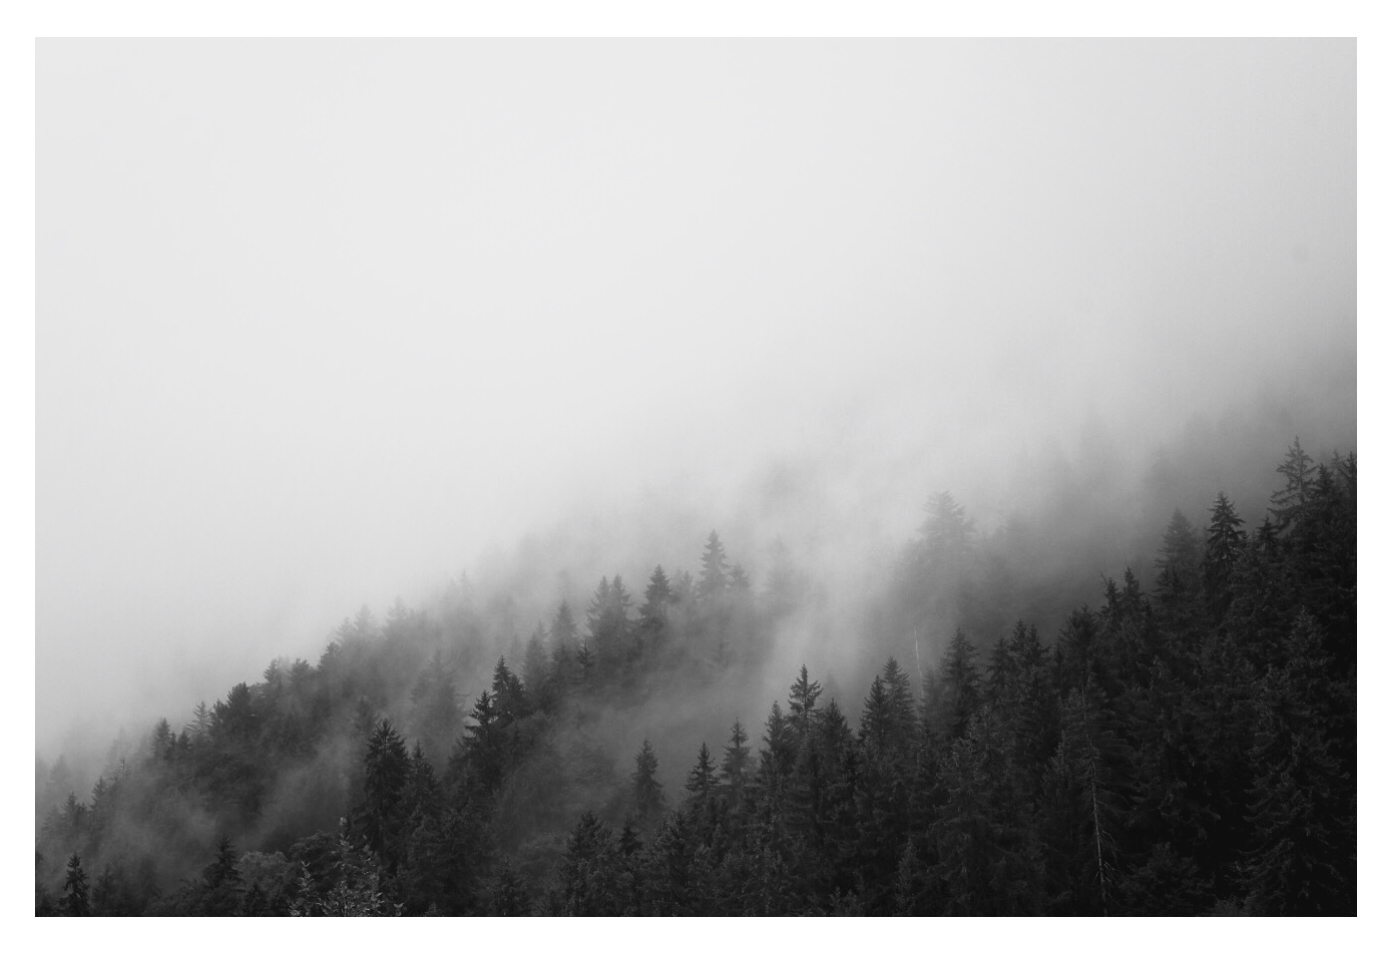 Moody black and white photo of a misty mountain